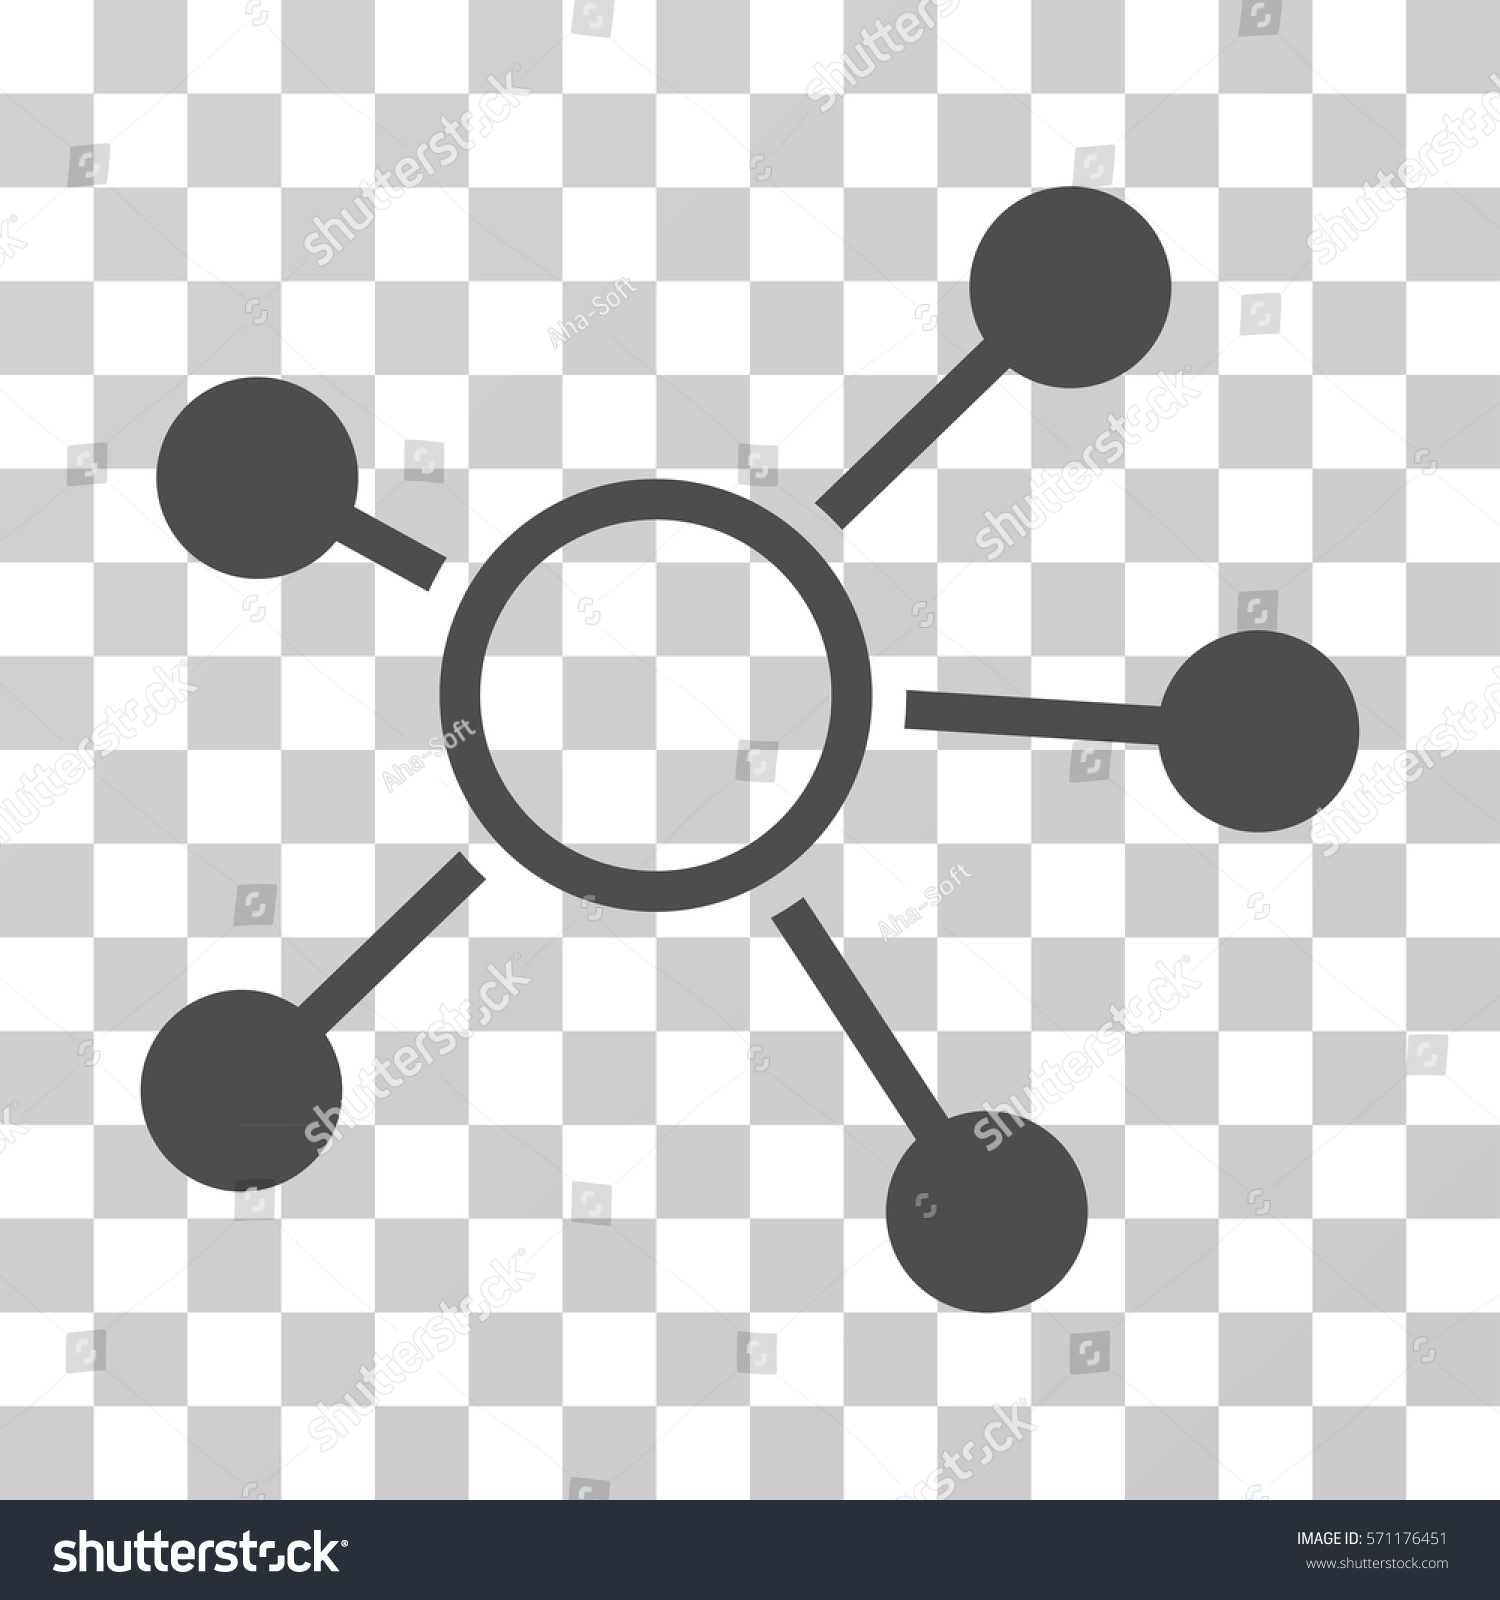 Connections Icon Vector Illustration Style Flat Stock Vector ...